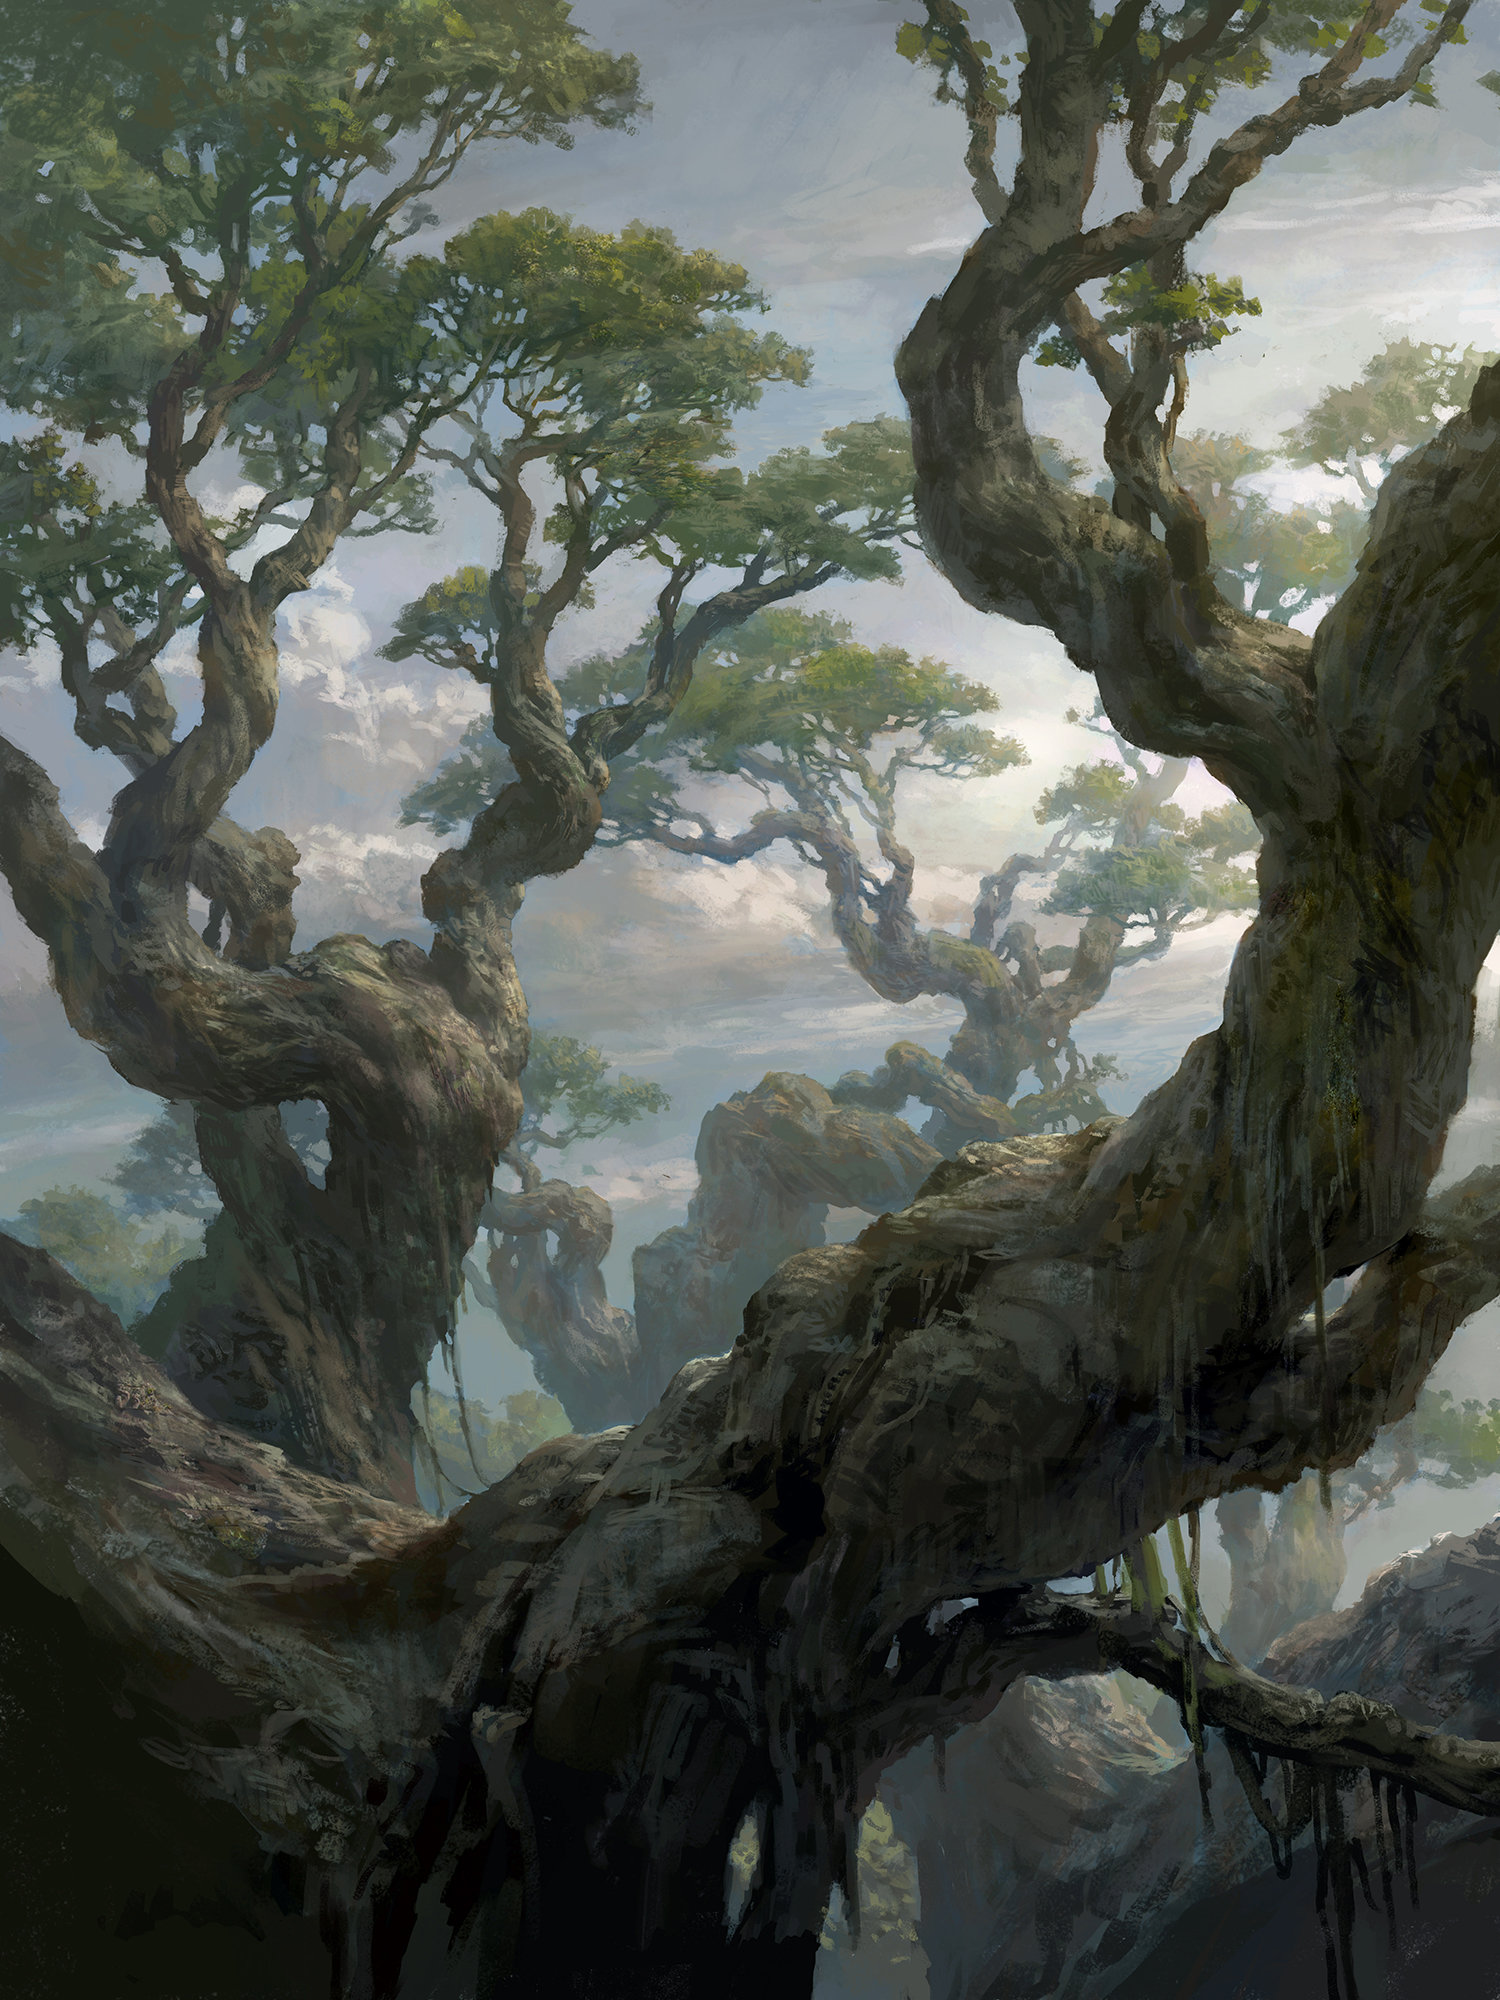 tianhua_xu_digital_painting10